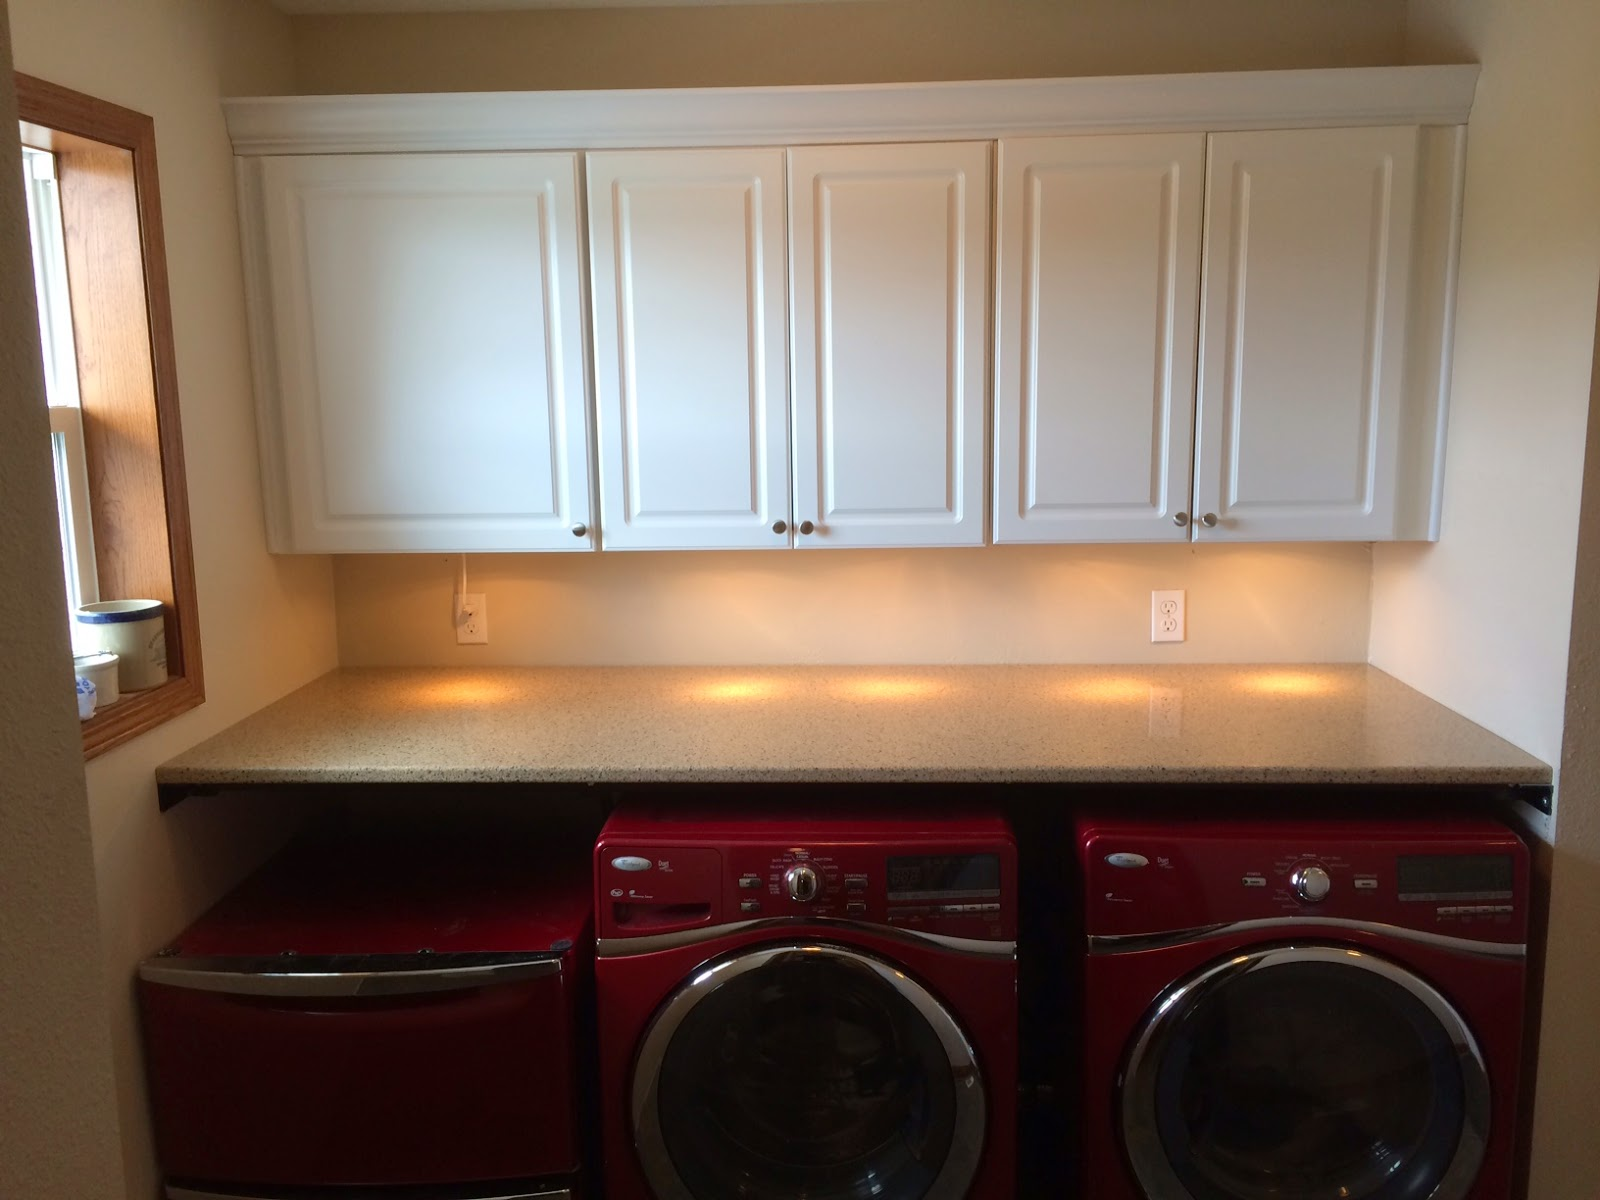 Countertop Above Washer And Dryer : Counter Top Over Washer & Dryer ~ Shawn Woodward